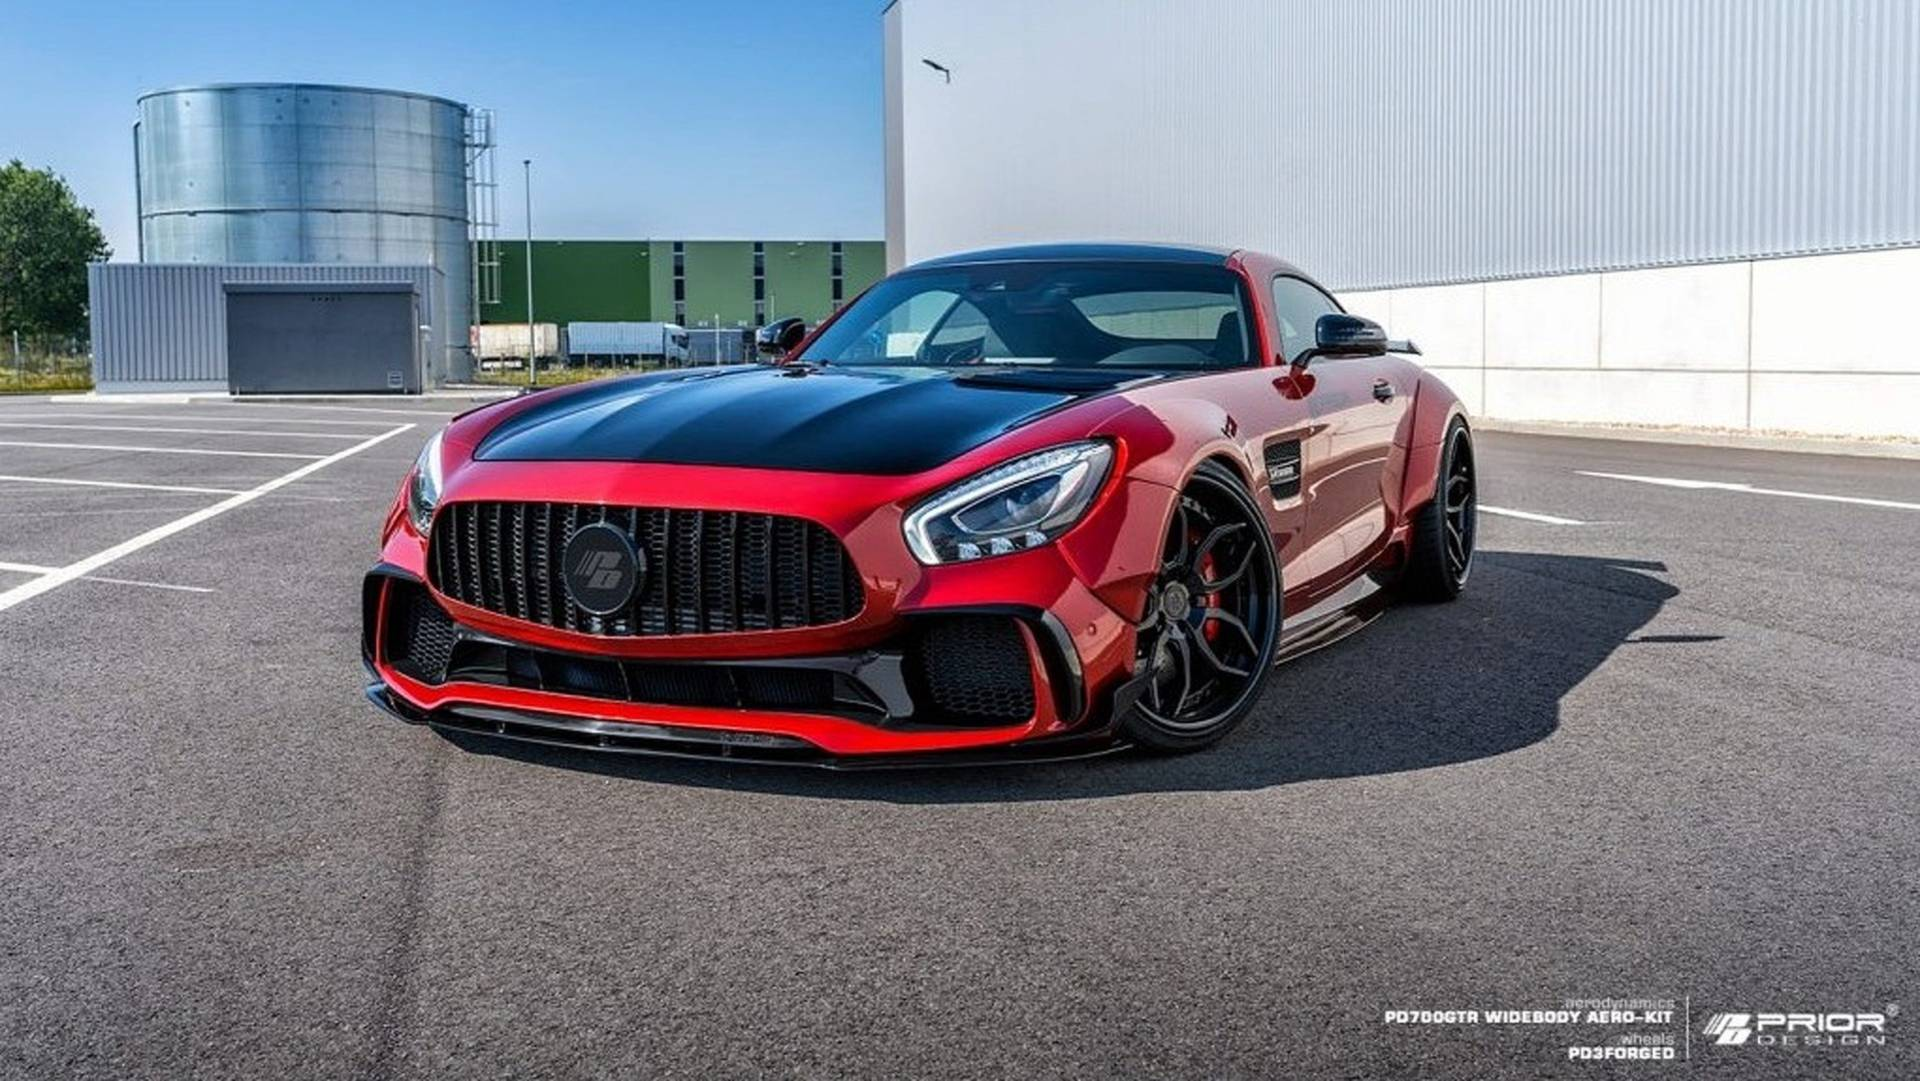 The Prior Design car atelier has been releasing body kits for Mercedes sport cars for over three years now